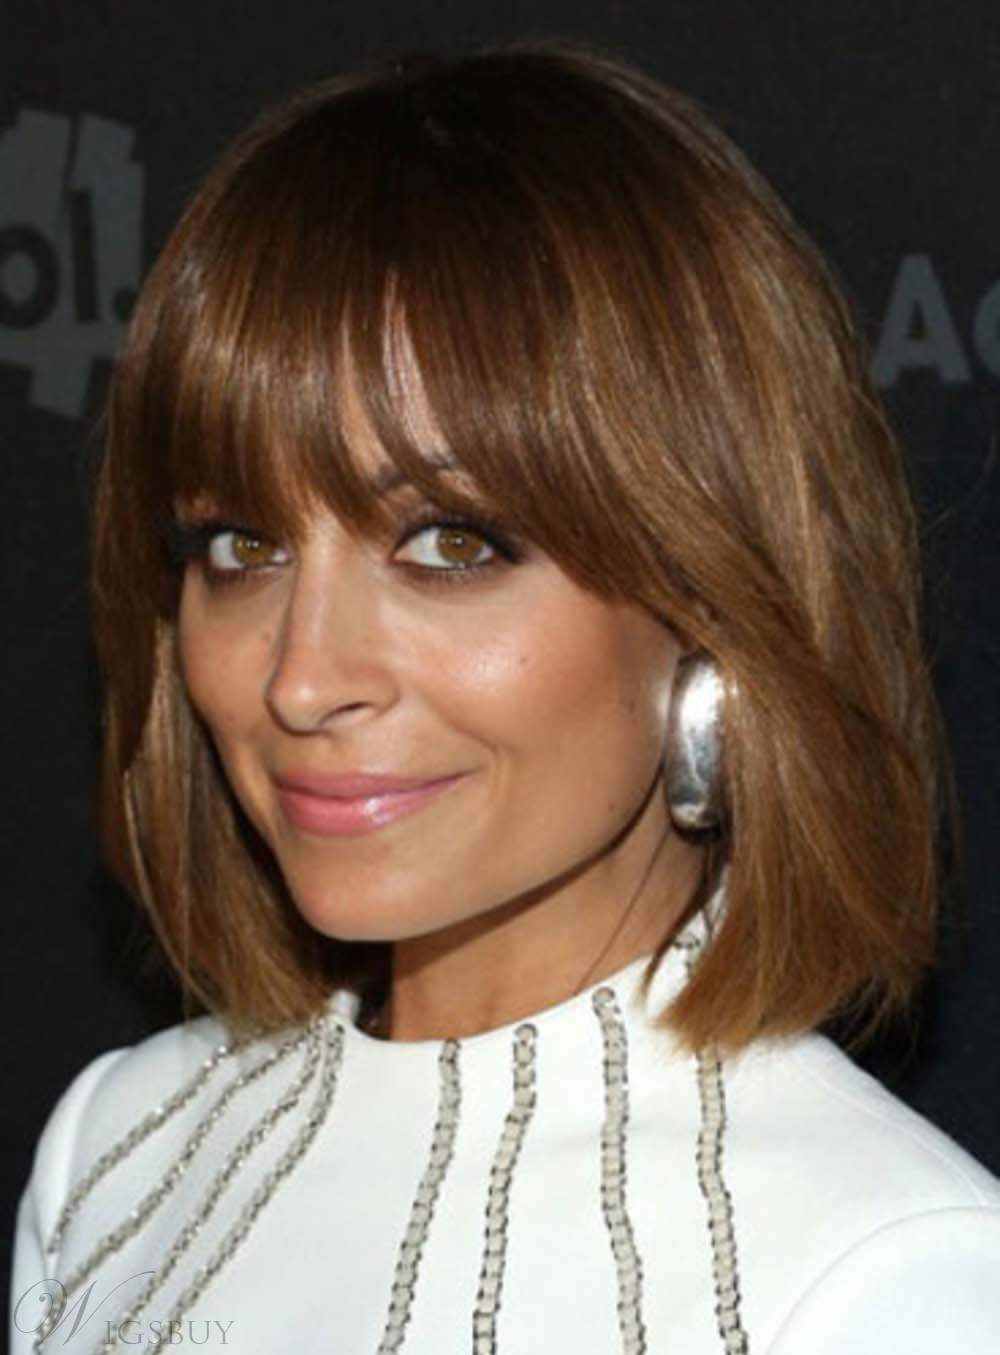 Bob Hairstyle Wigs with Full Bangs 10 Inches 100 Human Hair Monofilament Wigs